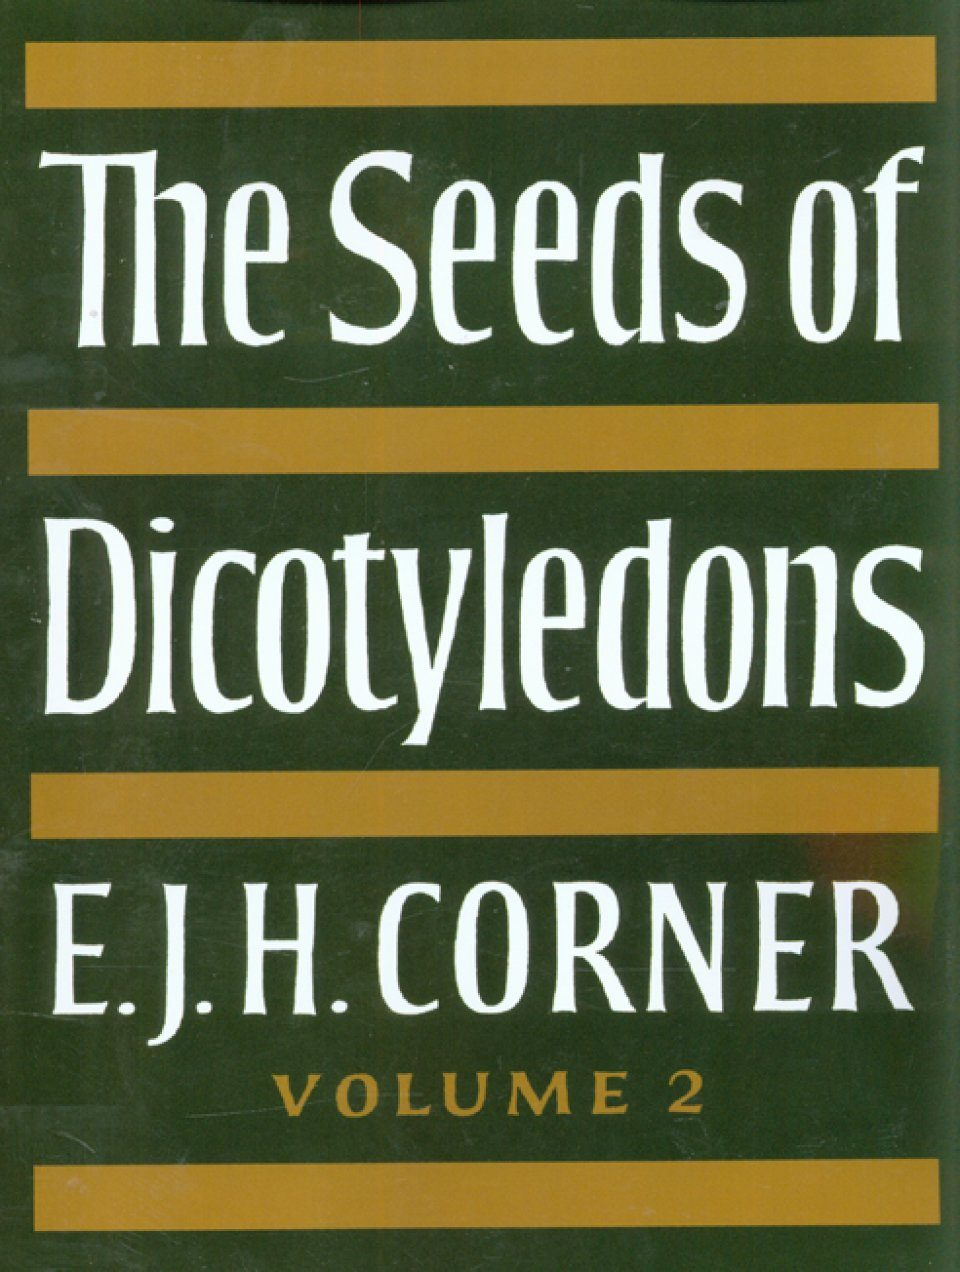 The Seeds of Dicotyledons: Volume 2, Illustrations